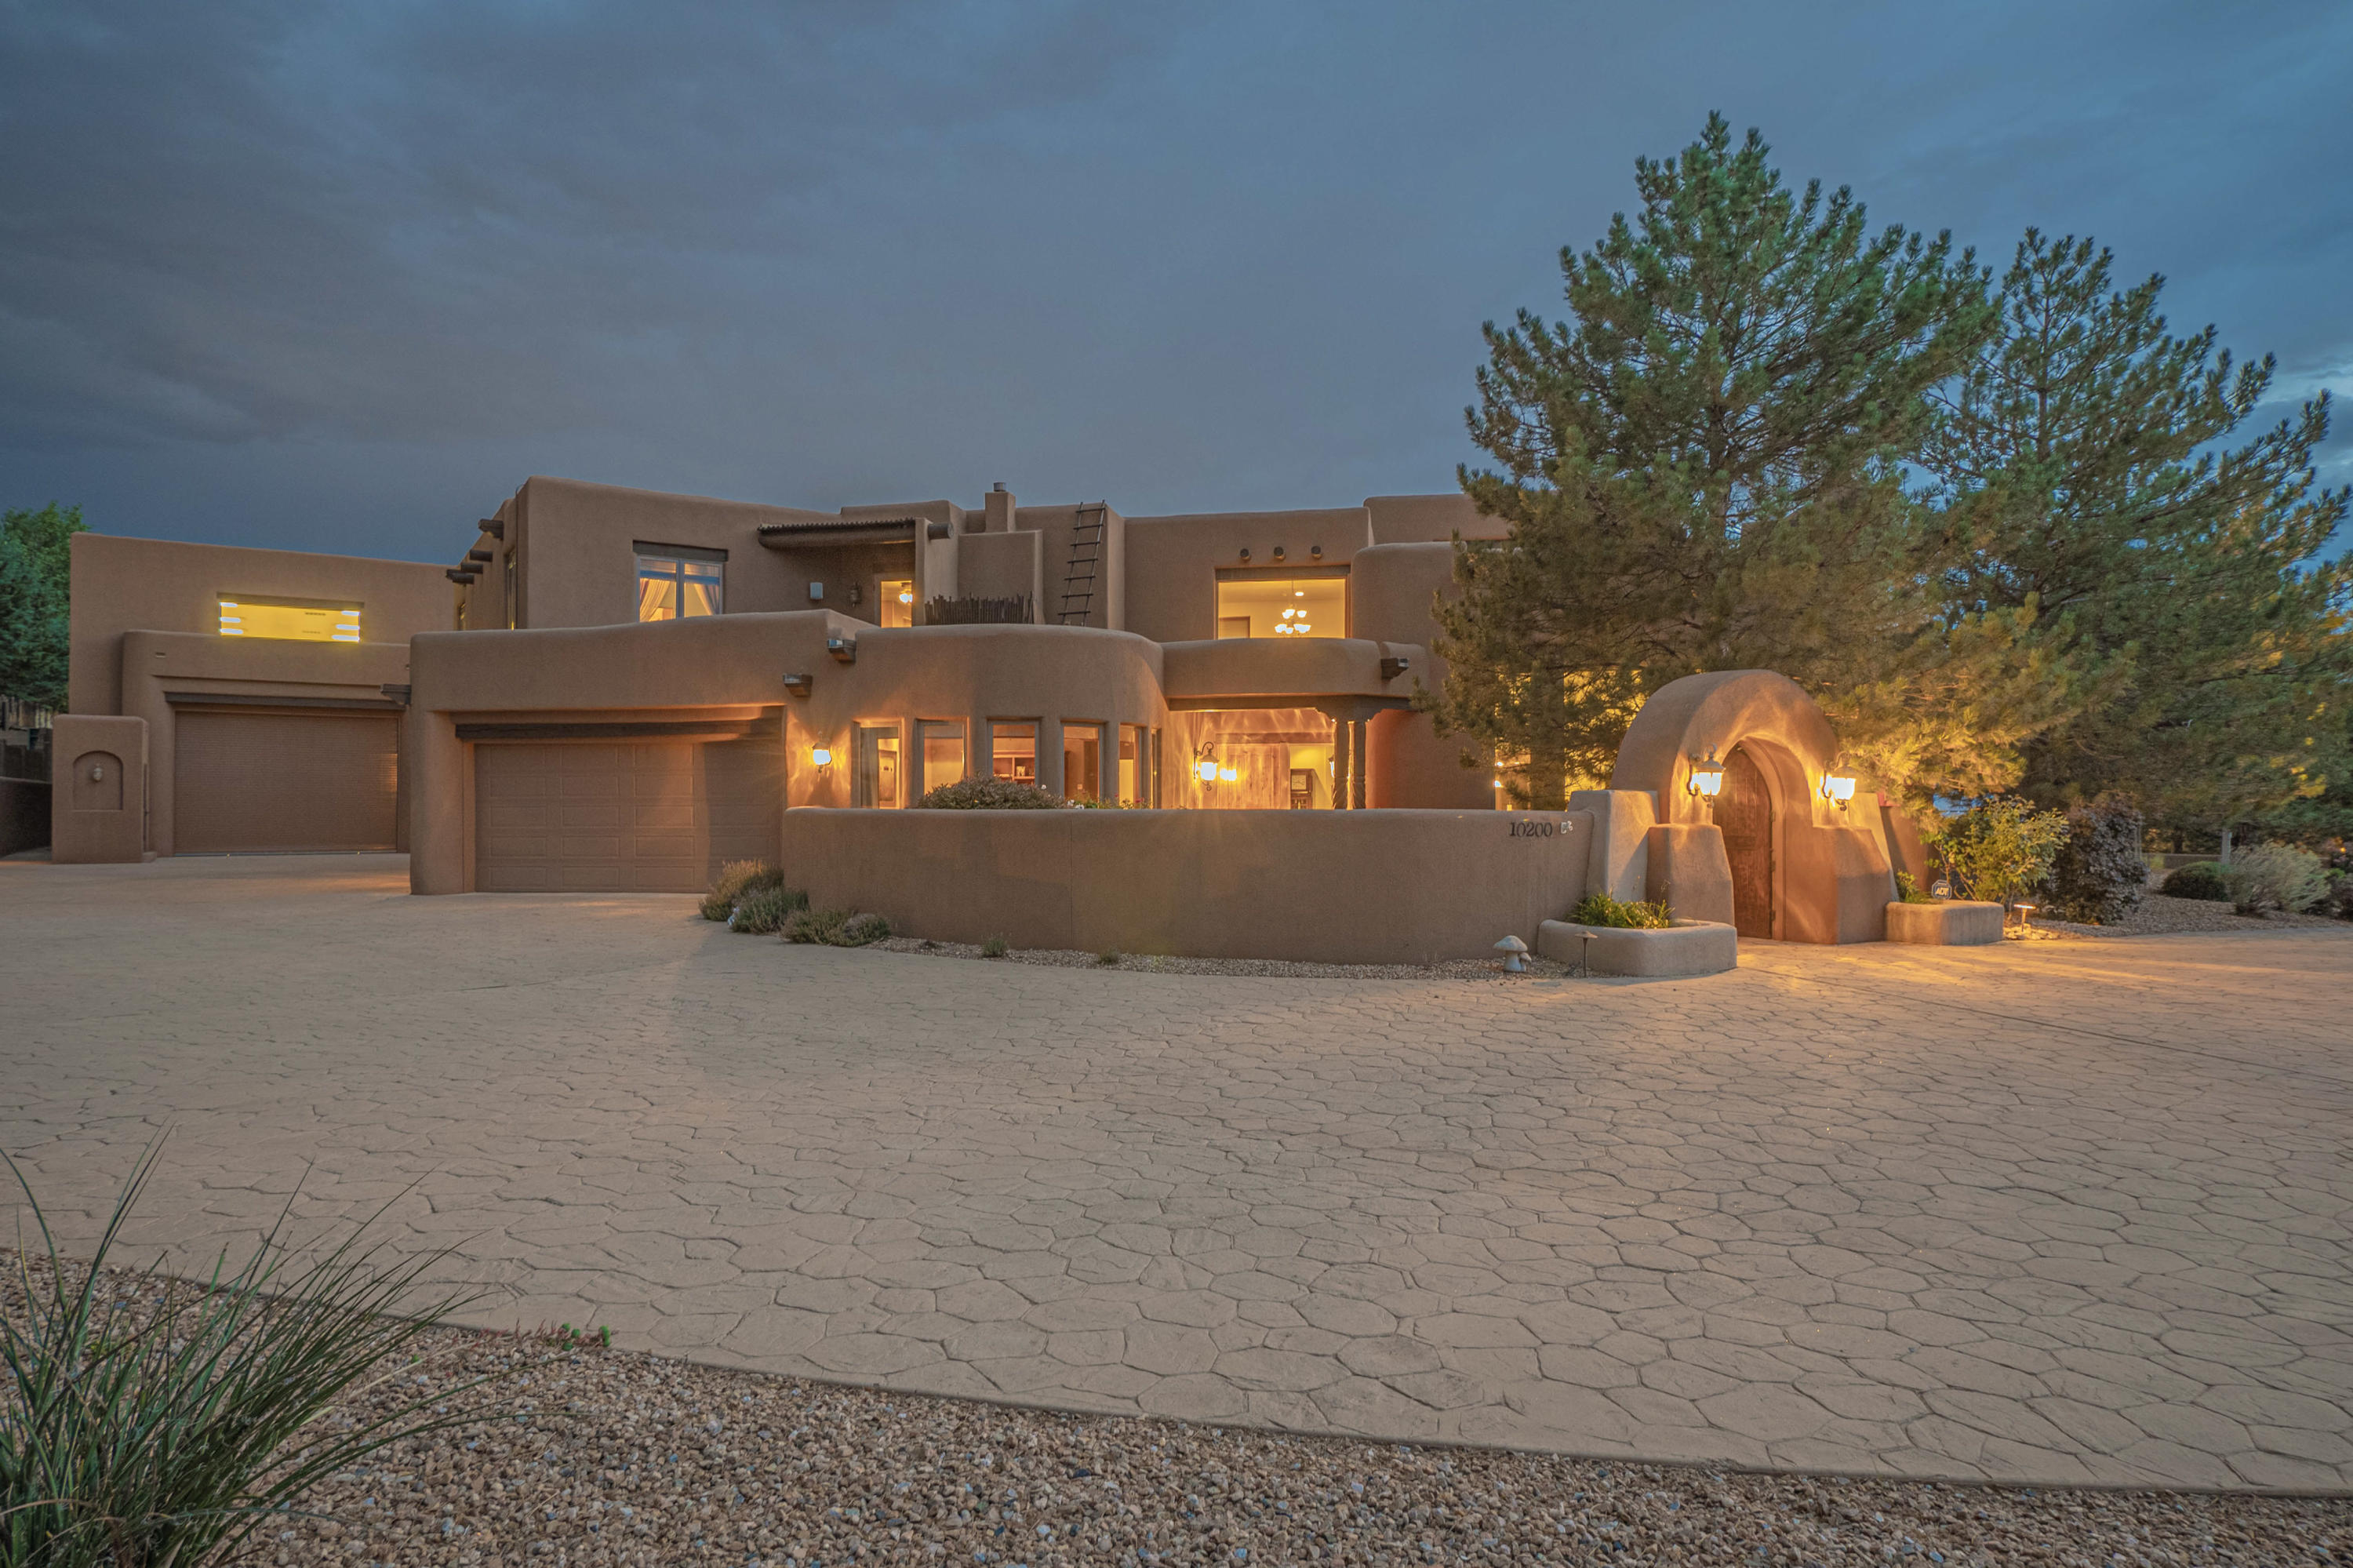 Heaven in North ABQ Acres! Spectacular Custom Built home, designed by Eric Spurlock. Enter through private courtyard. The flowing floorplan offers soaring herring bone beamed ceilings and expansive great room makes this a wonderful home for entertaining. Chef's kitchen offers all Viking Appliances, island with gas cooktop, opens to a Morning room with Kiva Fireplace, sitting area and a breakfast nook. Also opens to an outdoor patio. Formal dinning room, with entrance to private Wine tasting room, temperature controlled, space for 100s of bottles w/racks and wine storage. Seating for conversation. Owner's suite on main level offers tray ceilings, sitting area, access to outside patio.